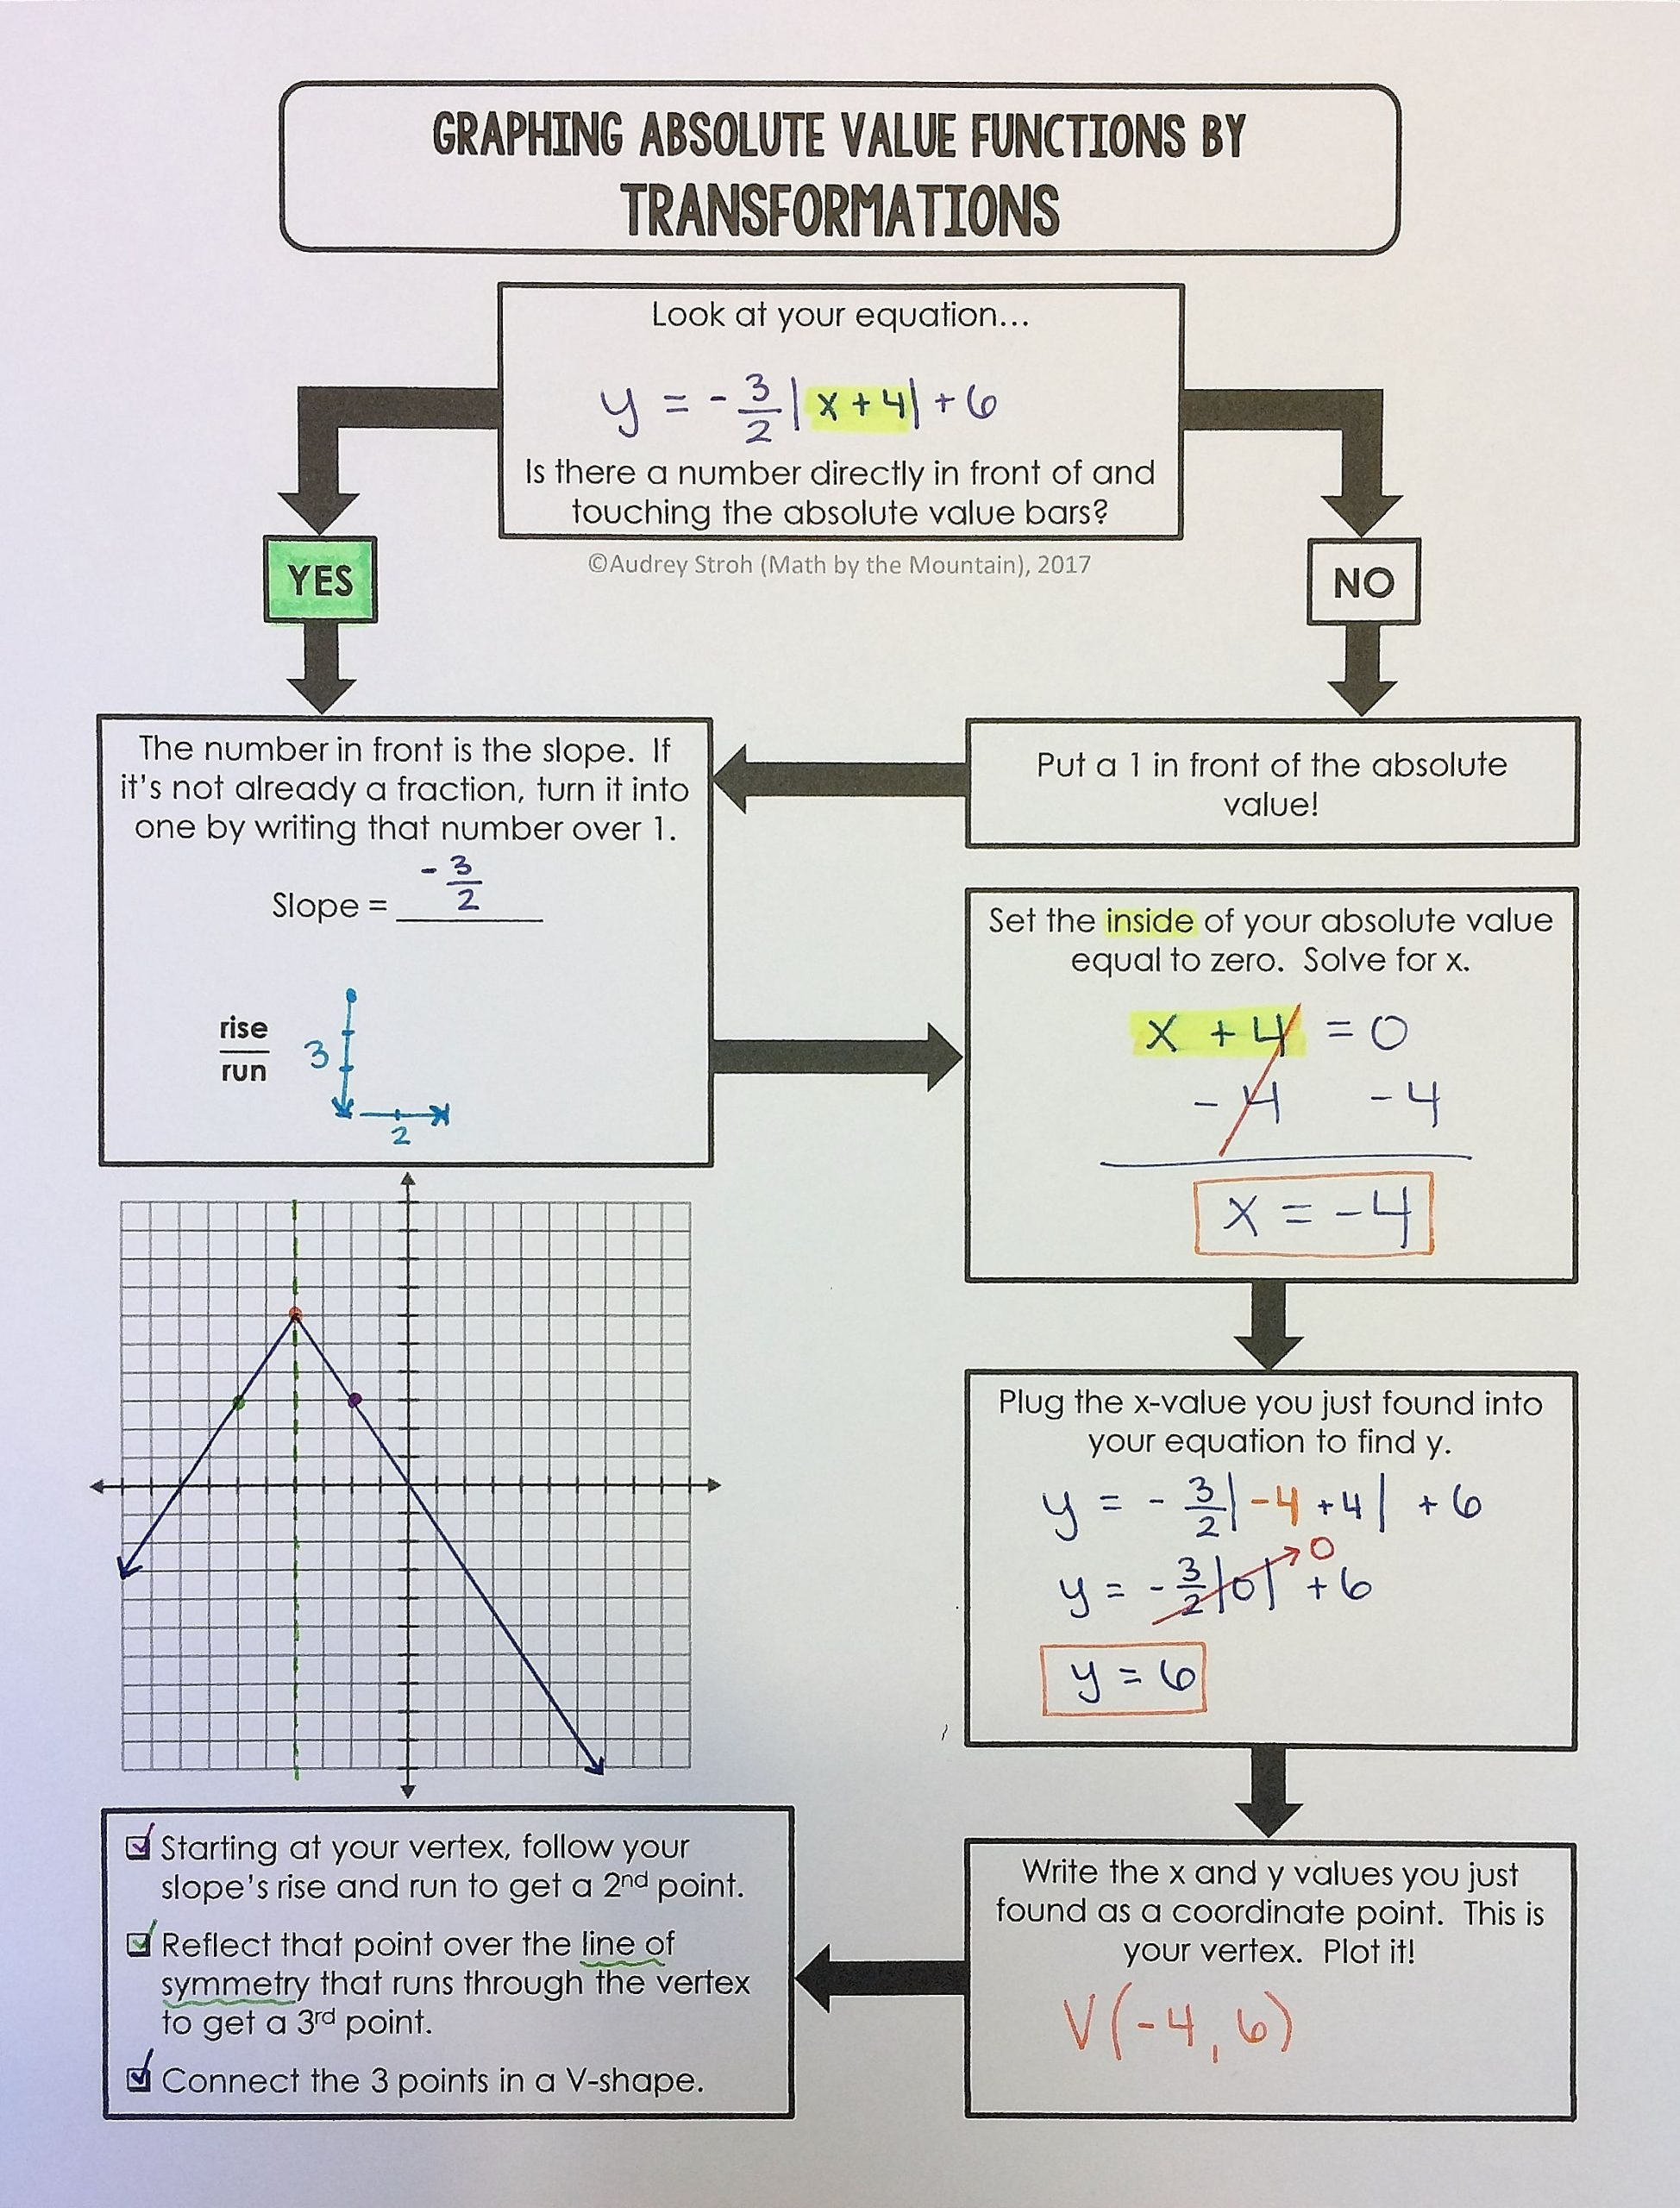 Graphing Absolute Value Functions Flowchart Graphic